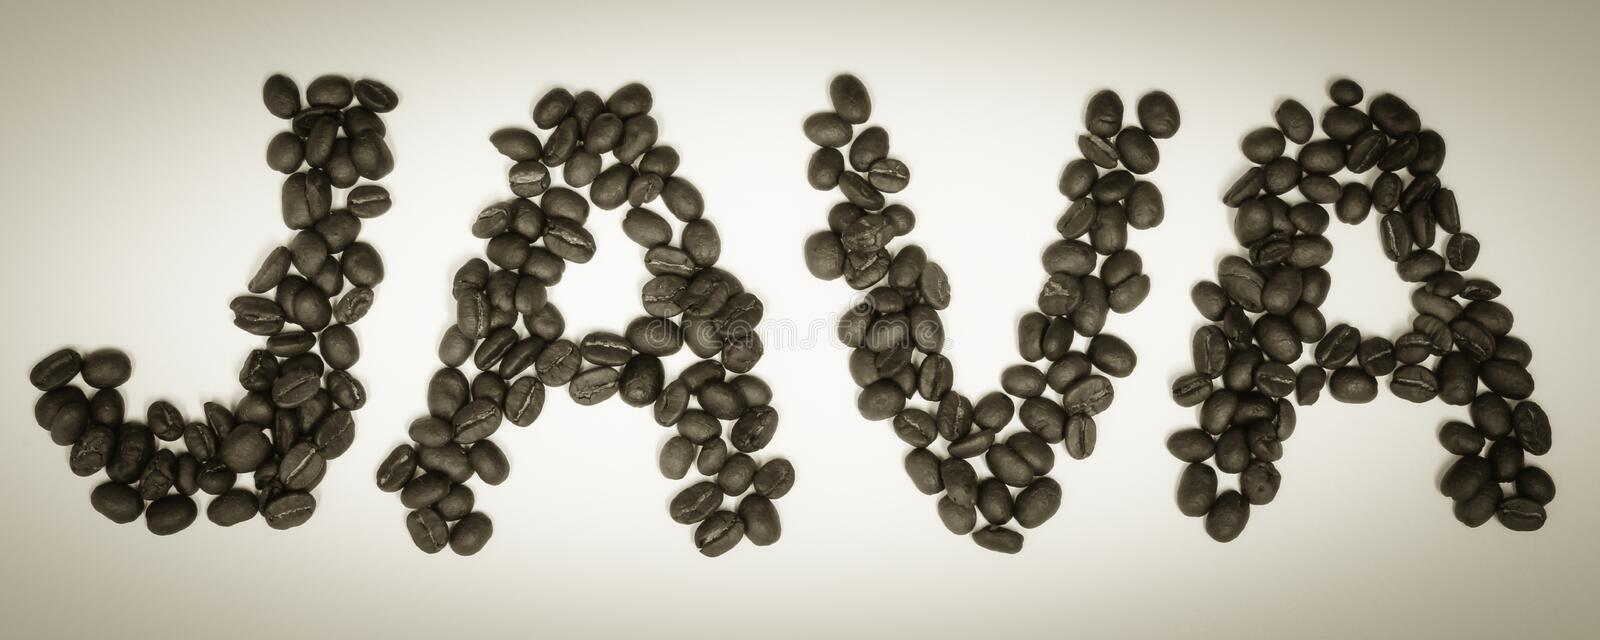 Coffee Time - JAVA Beans royalty free stock photo